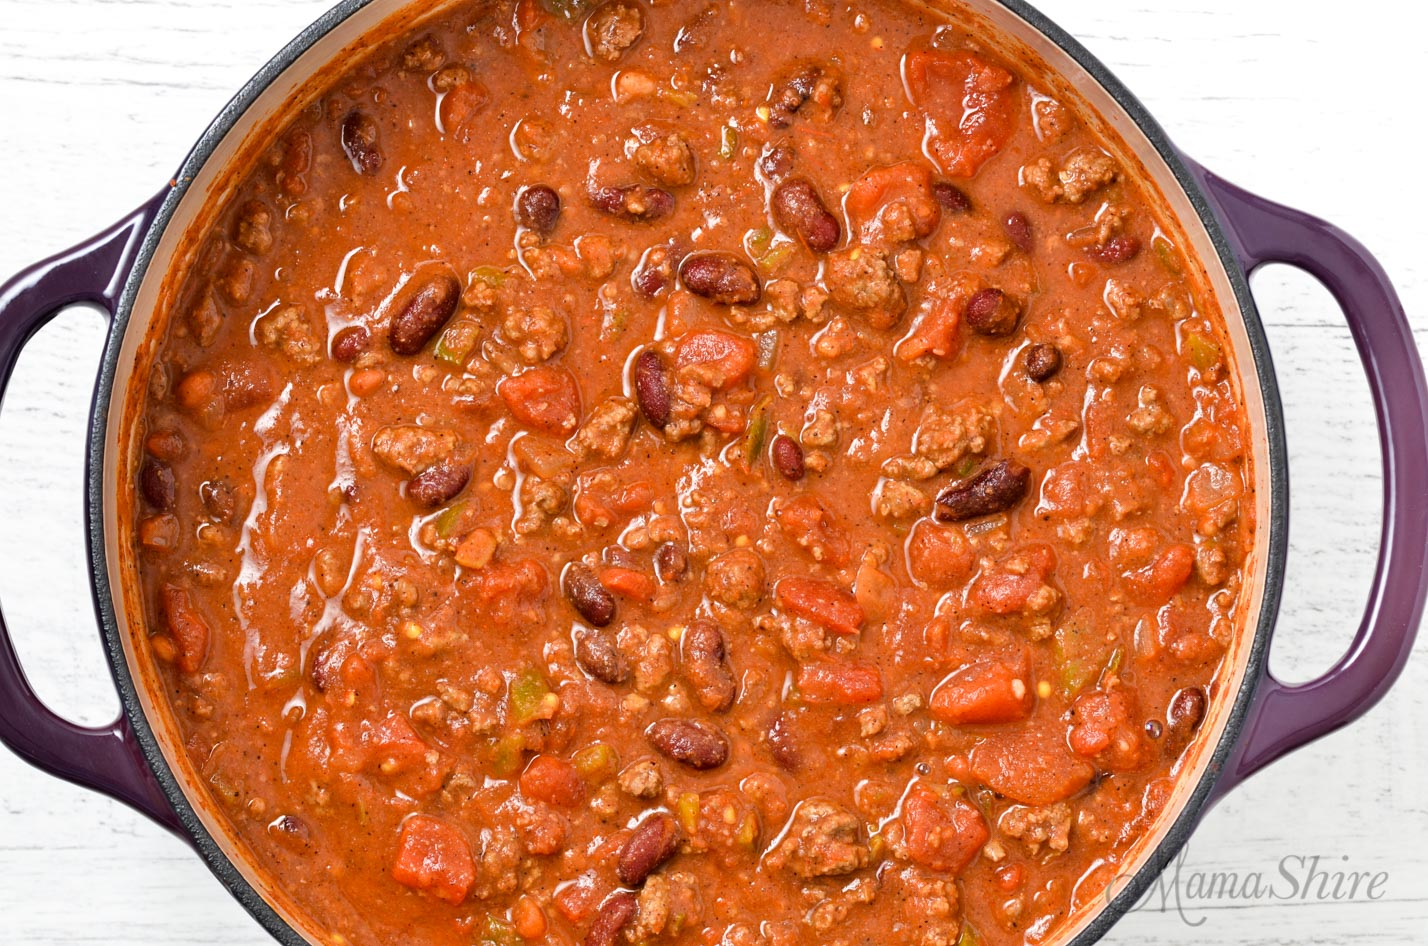 A big pot of chili with ground beef, beans, tomatoes, and salsa.